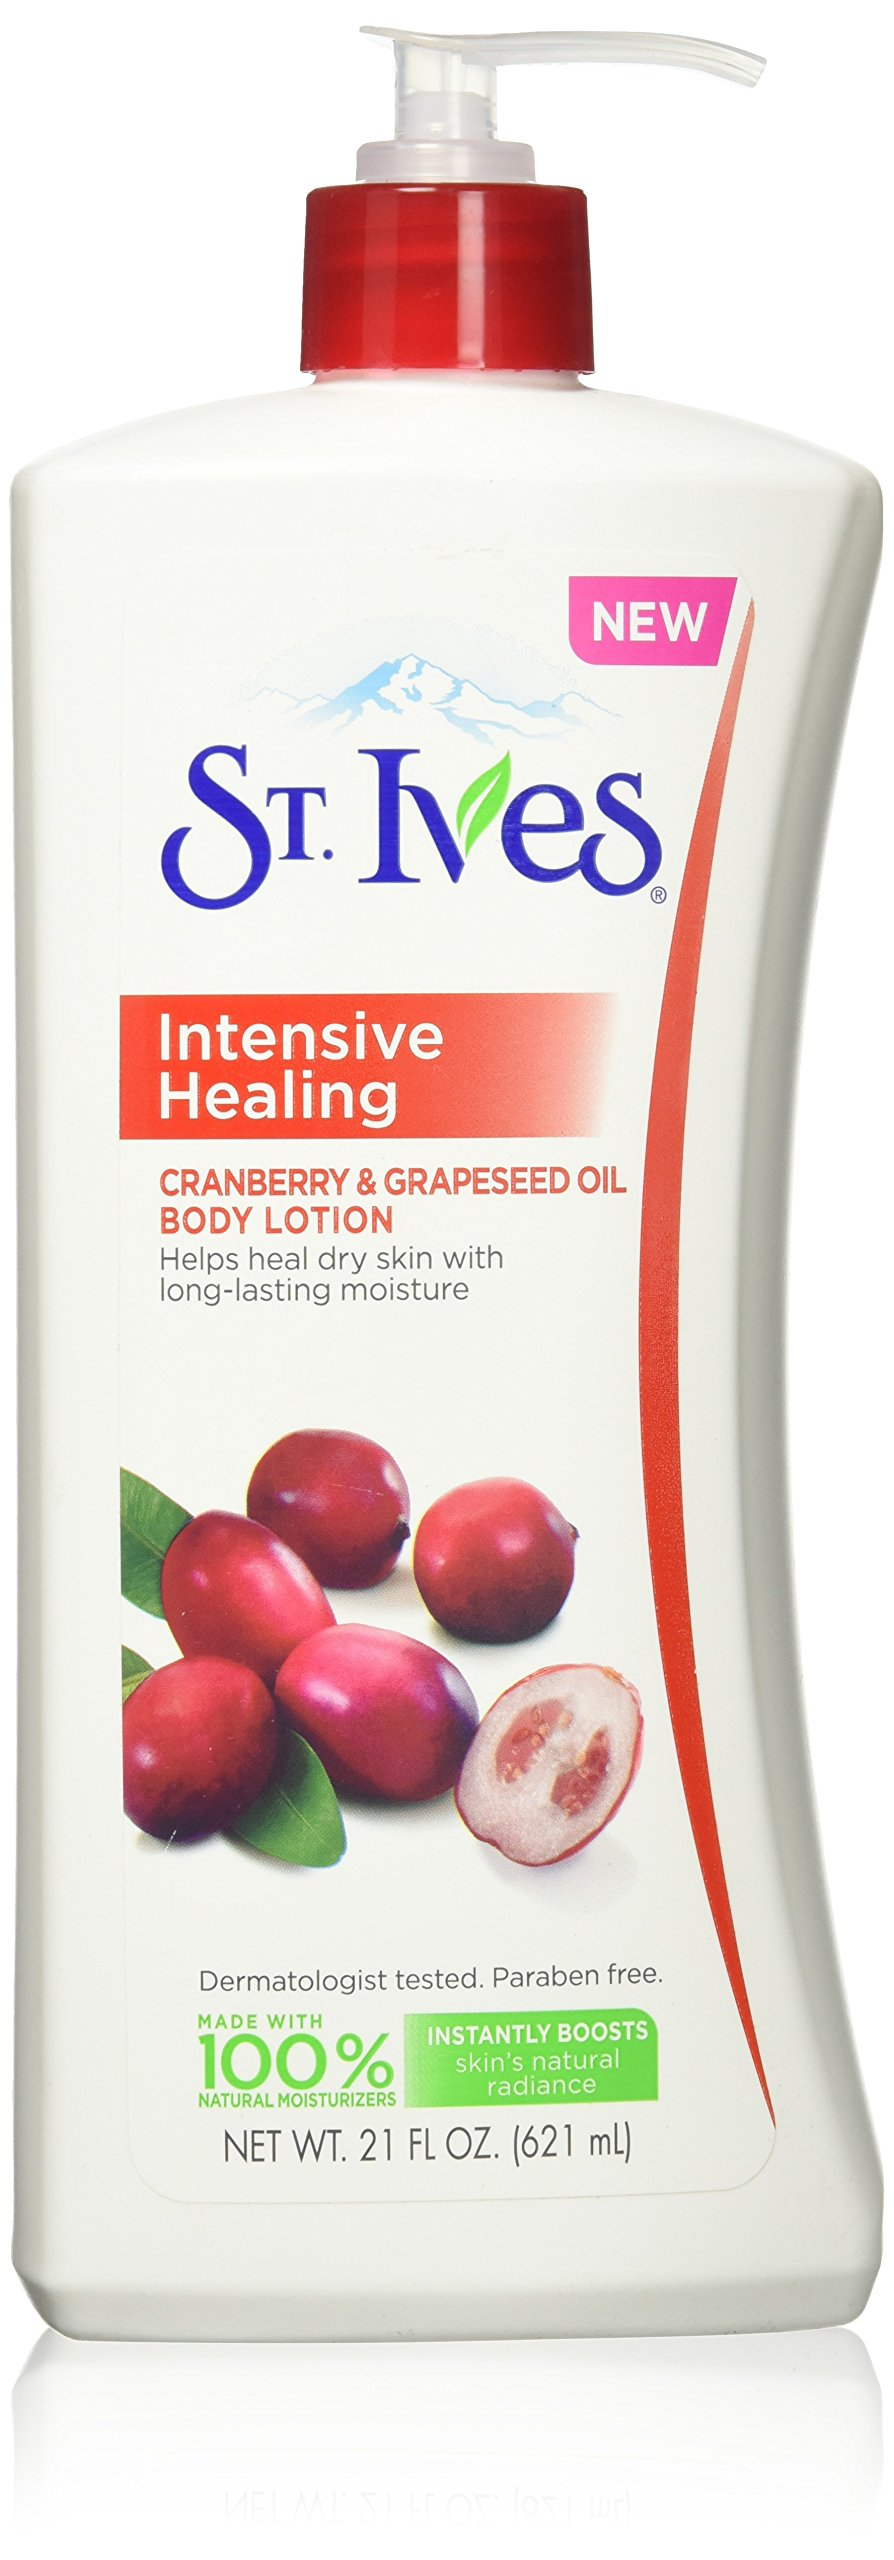 St Ives Repairing Body Lotion, Cranberry and Grapeseed Oil, 21 Ounce (3 Pack) by St. Ives